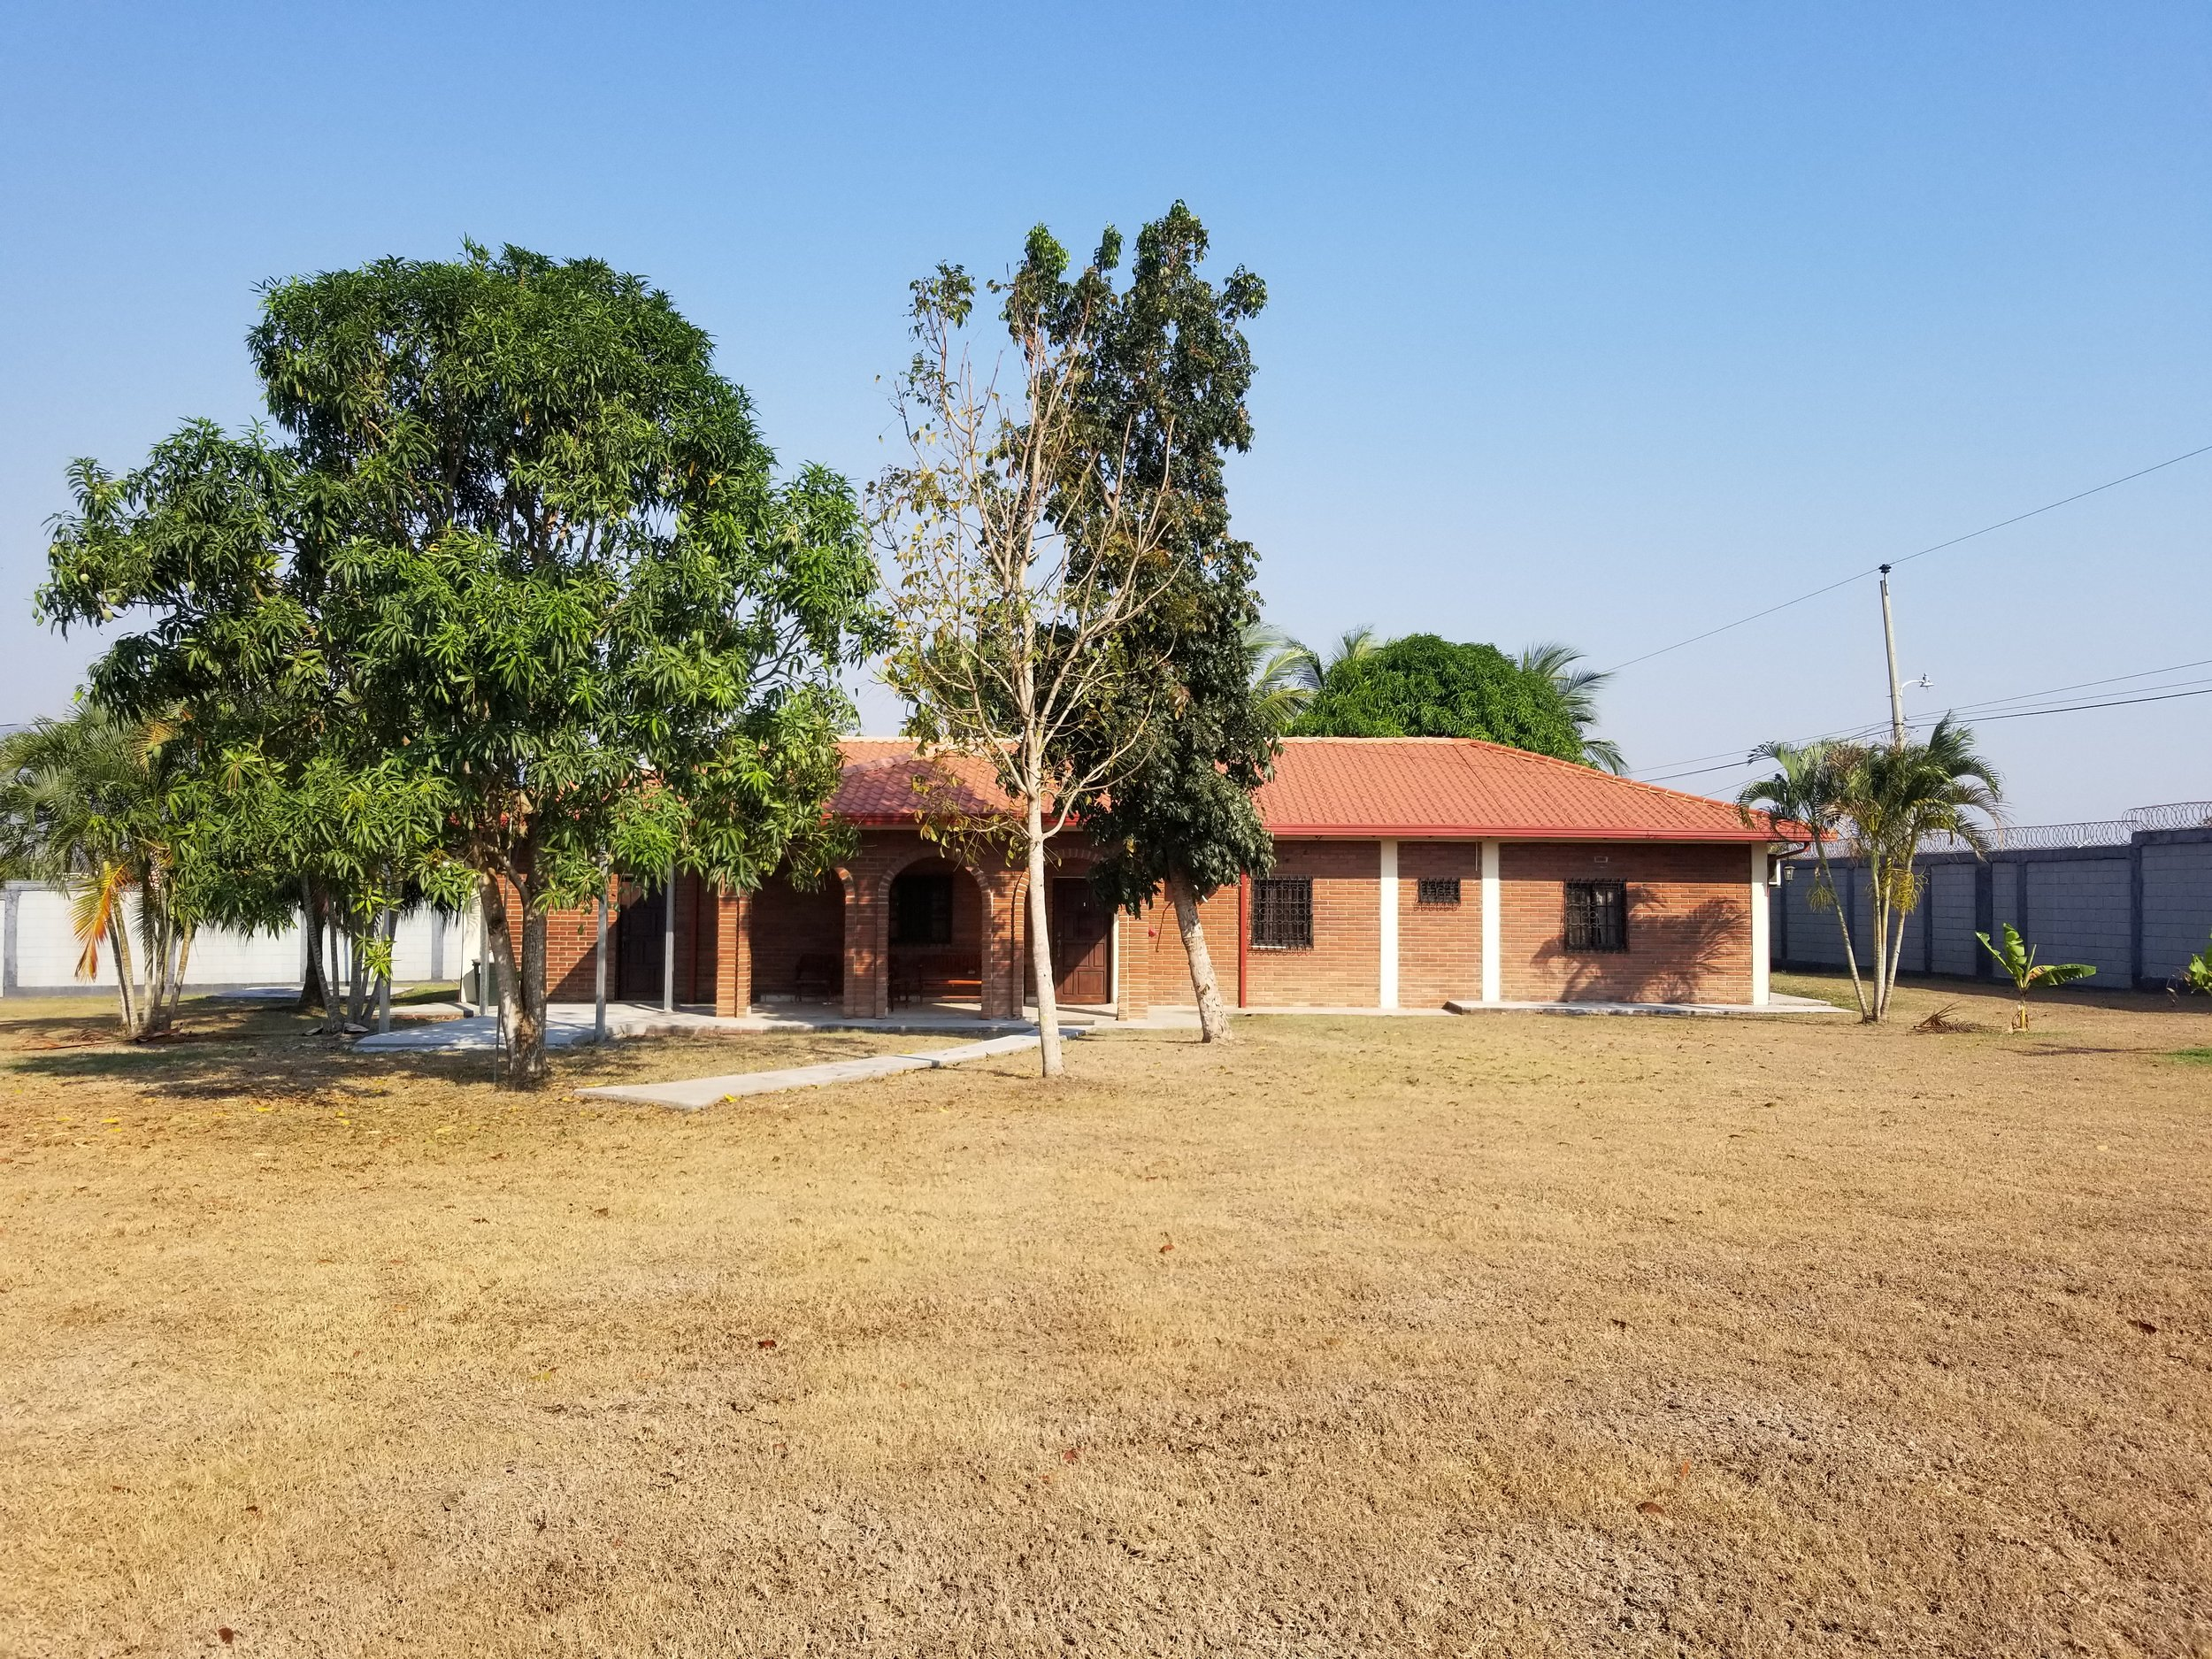 Missionary House 2